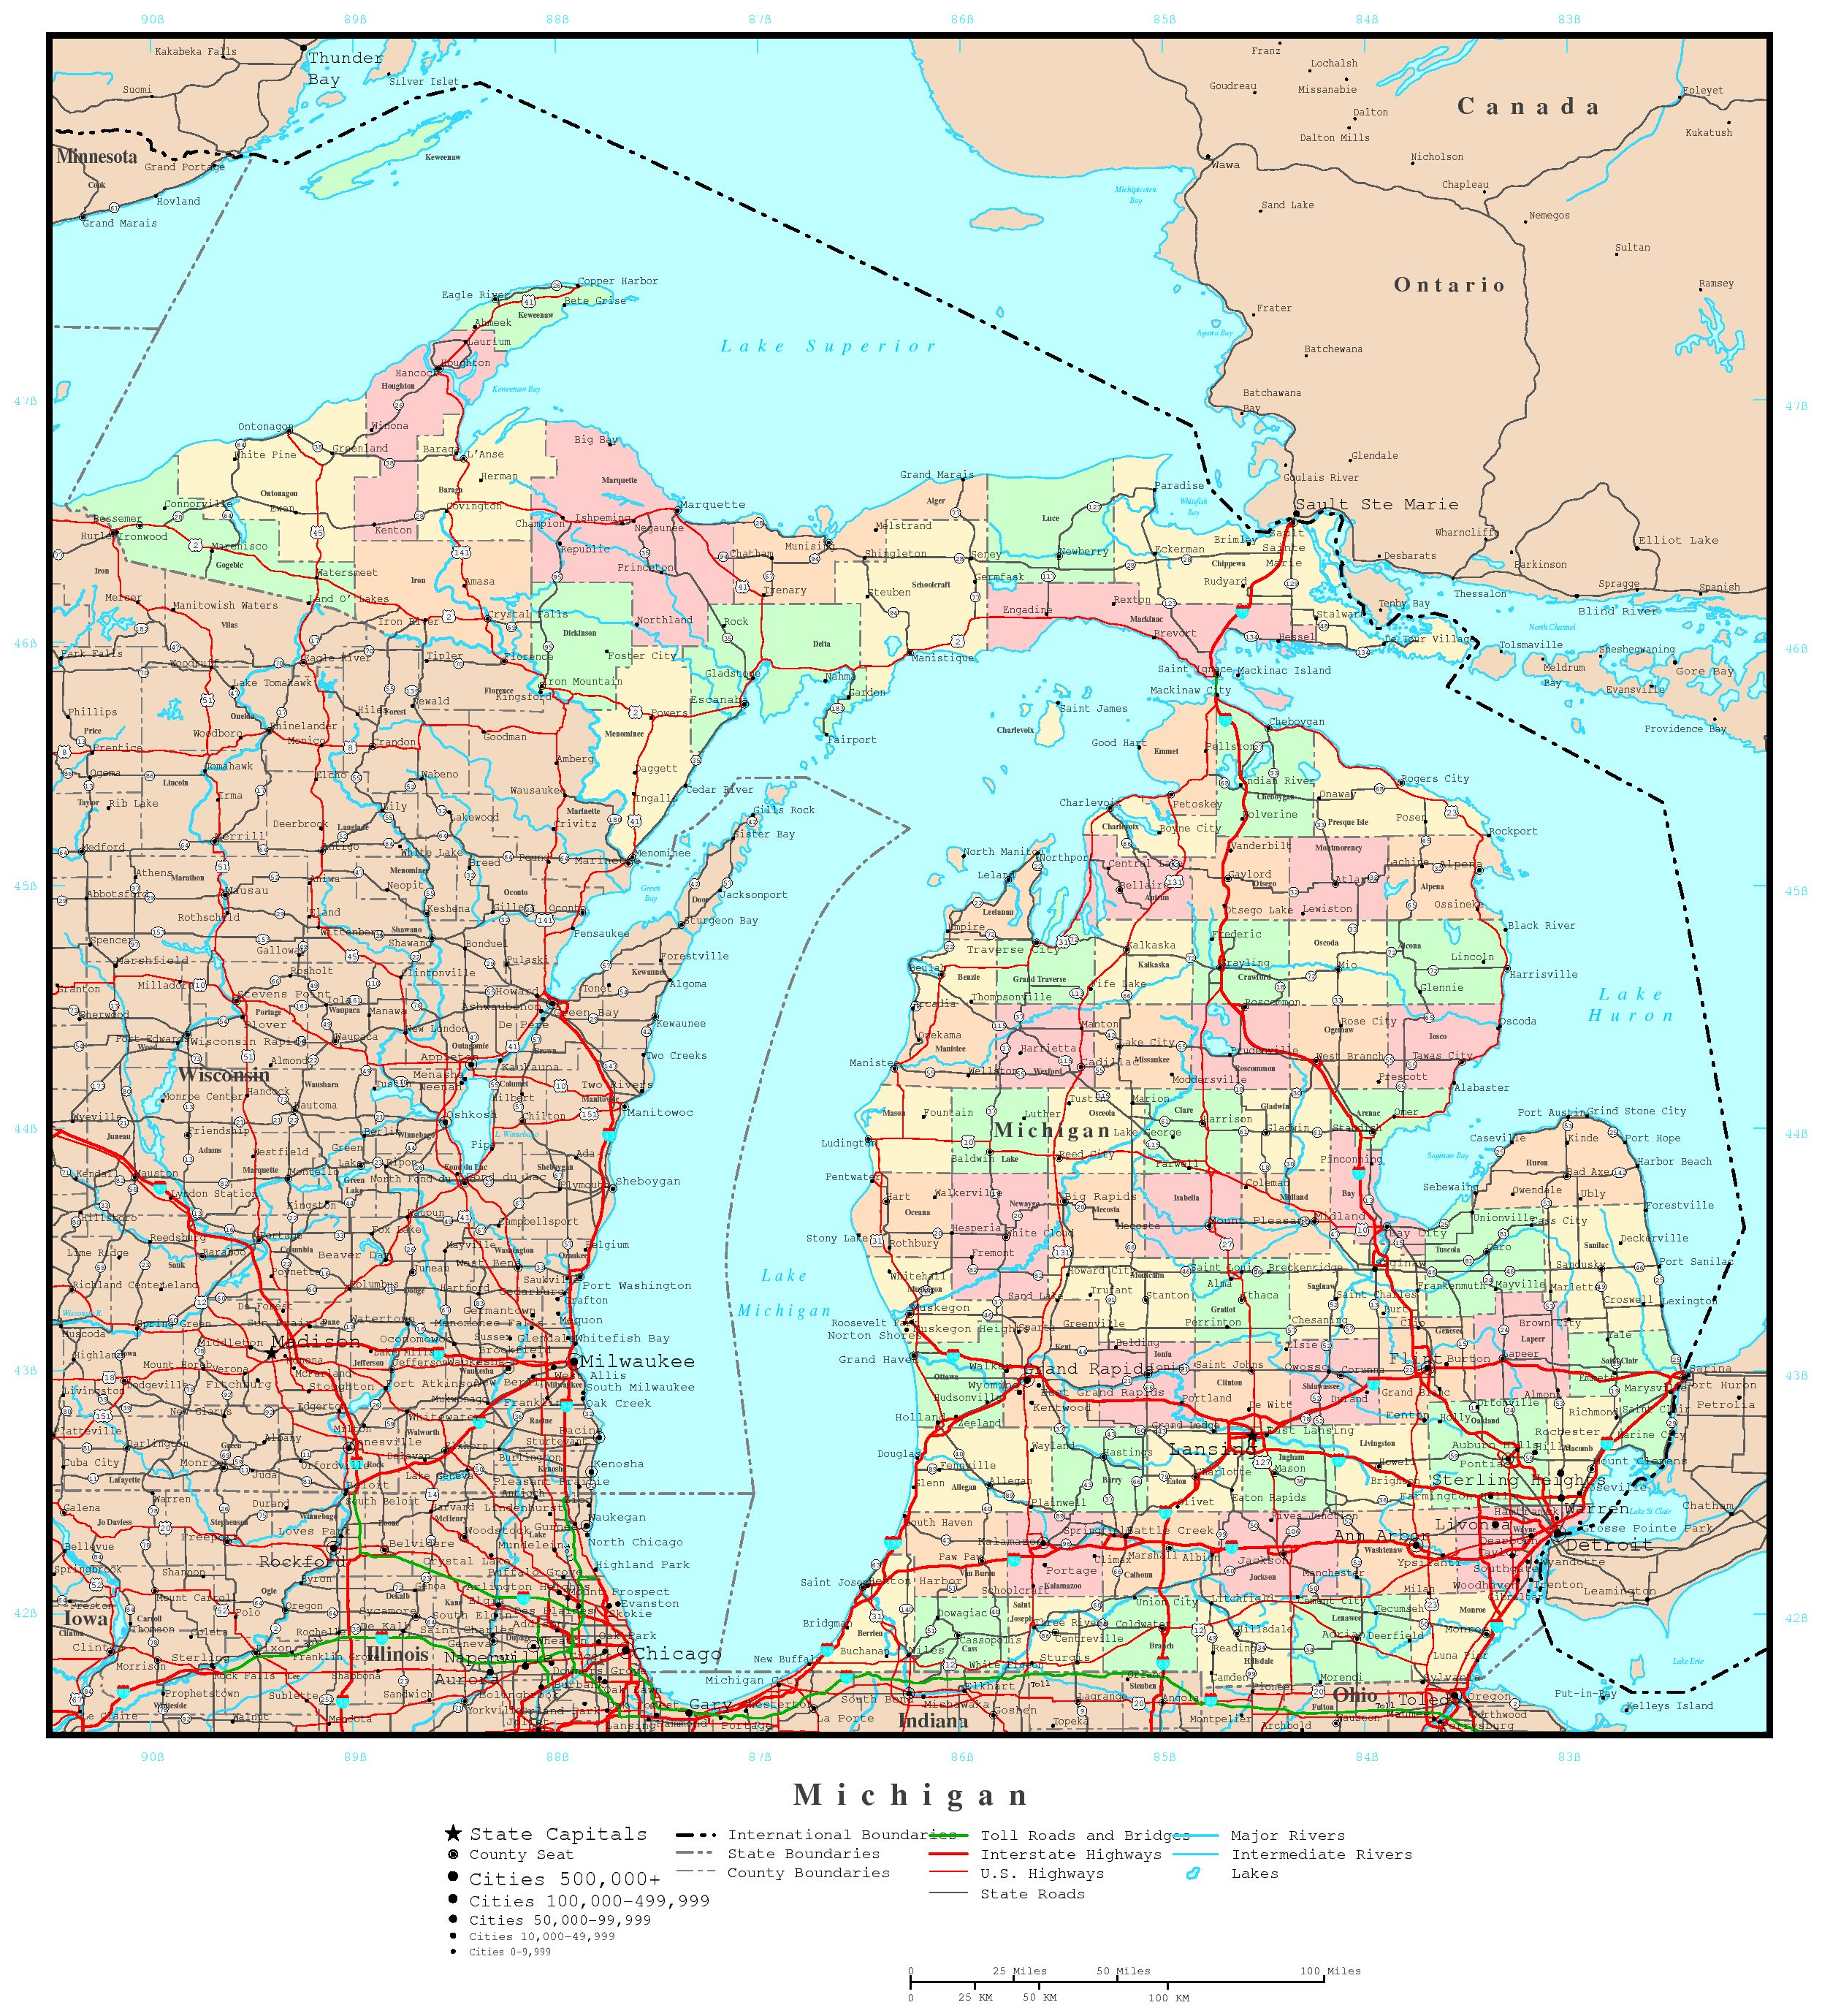 michigan political map. michigan elevation map